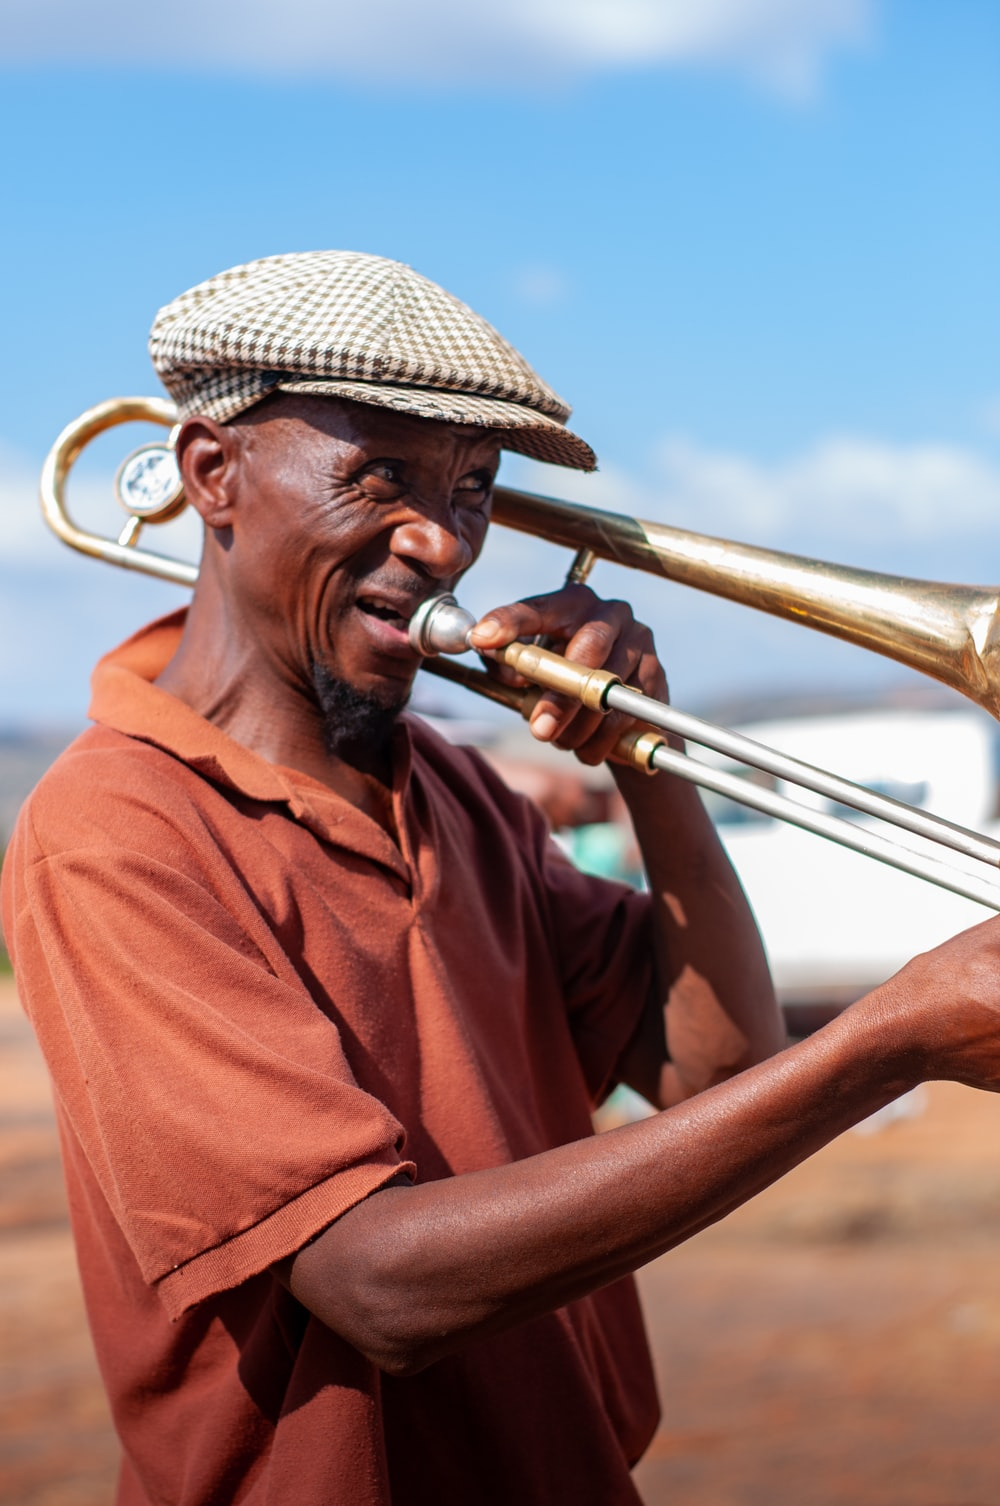 man in red polo shirt wearing brown hat holding brass trumpet during daytime